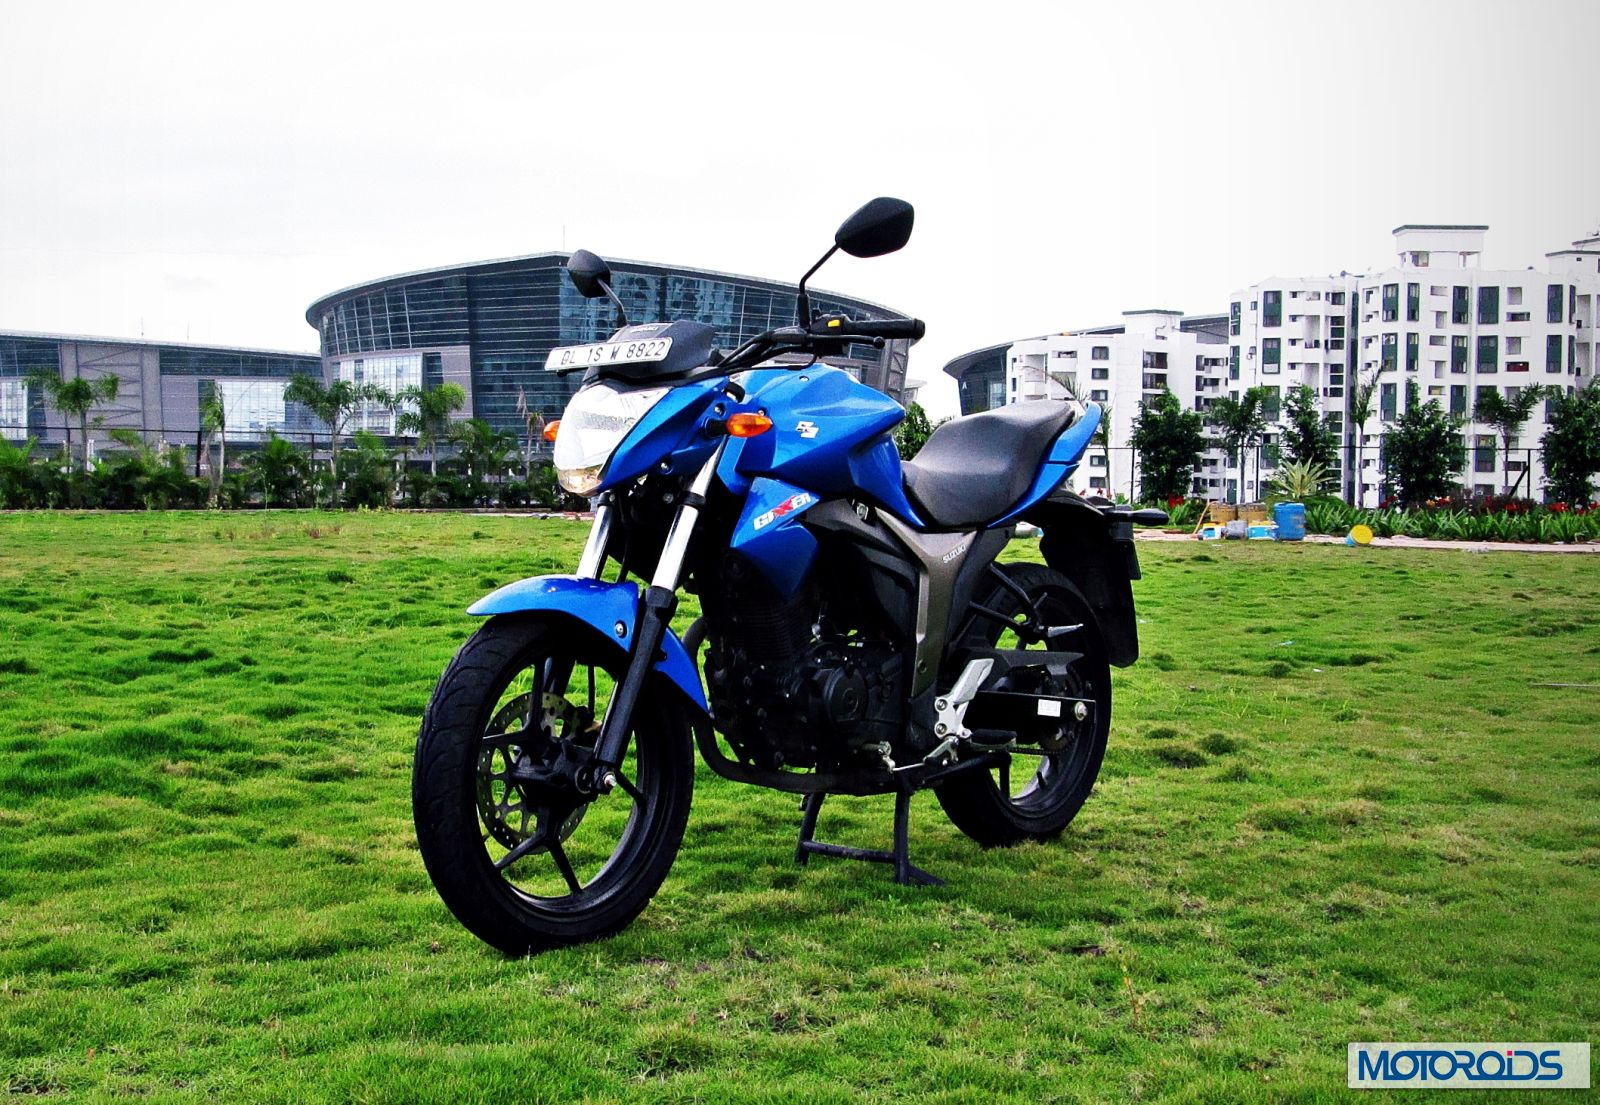 Suzuki Gixxer 155 Review : The Namesake | Motoroids